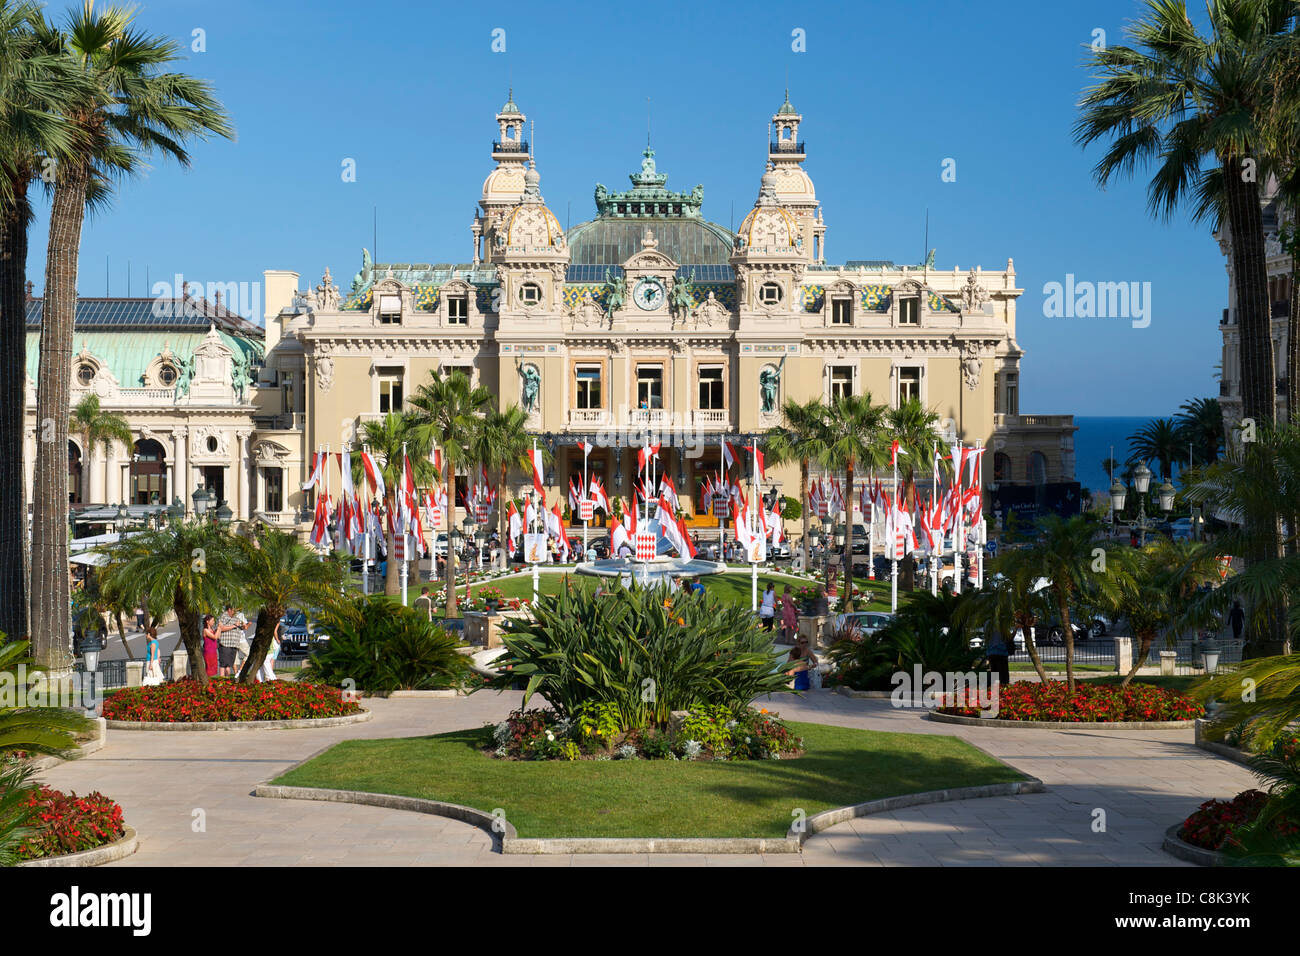 Monte Carlo casino in the independent principality of Monaco on the French Riviera along the Mediterranean coast. - Stock Image